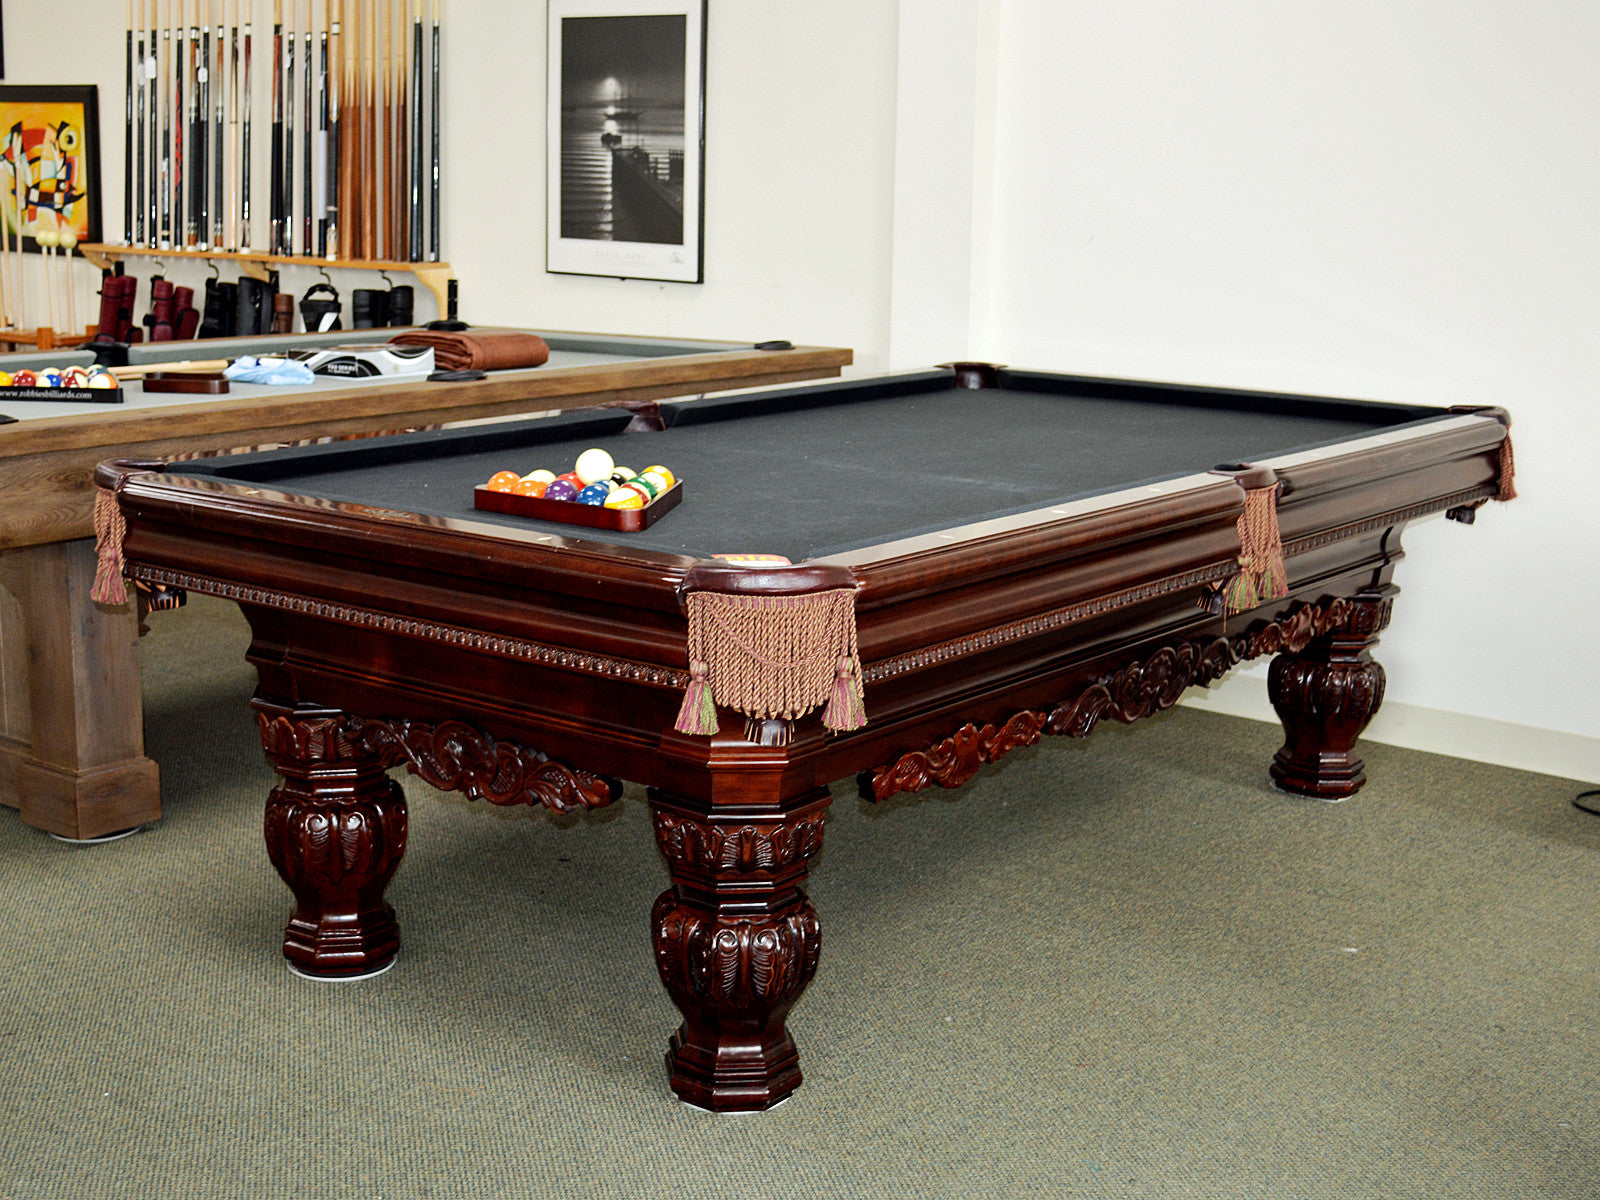 Olhausen vs Brunswick Pool Tables